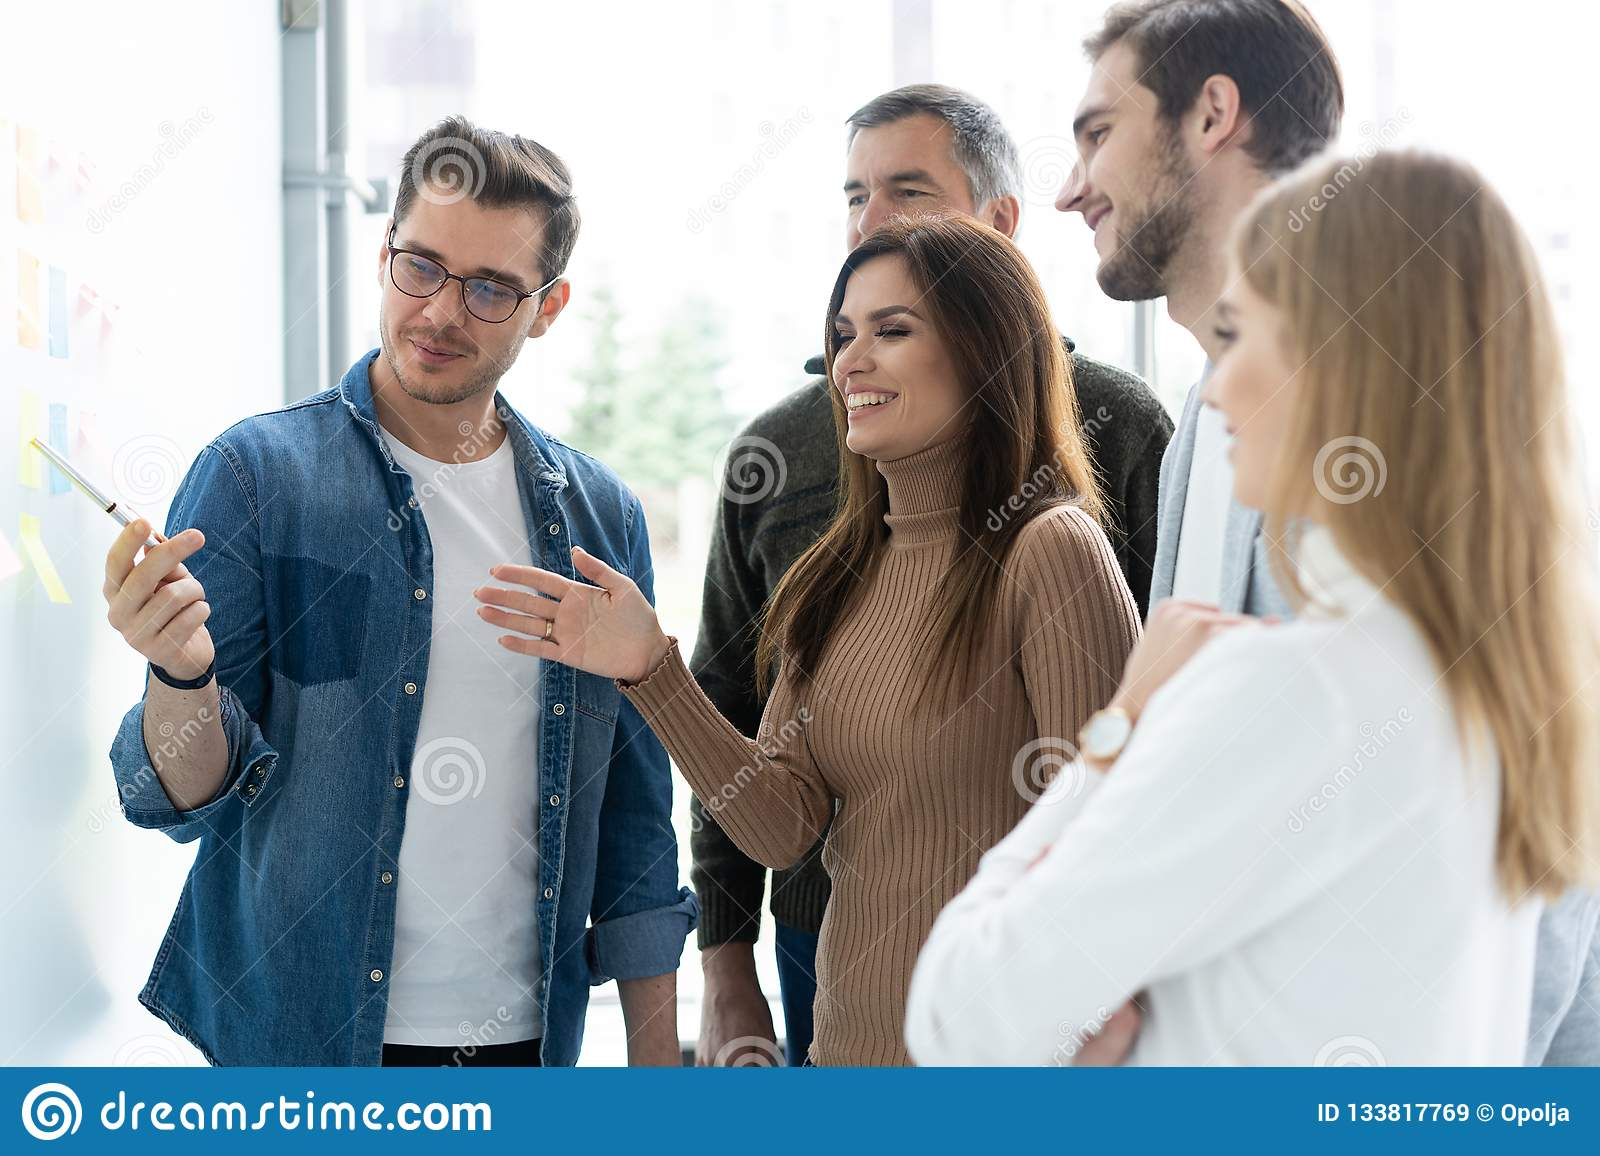 Business, education and office concept - business team with flip board in office discussing something.